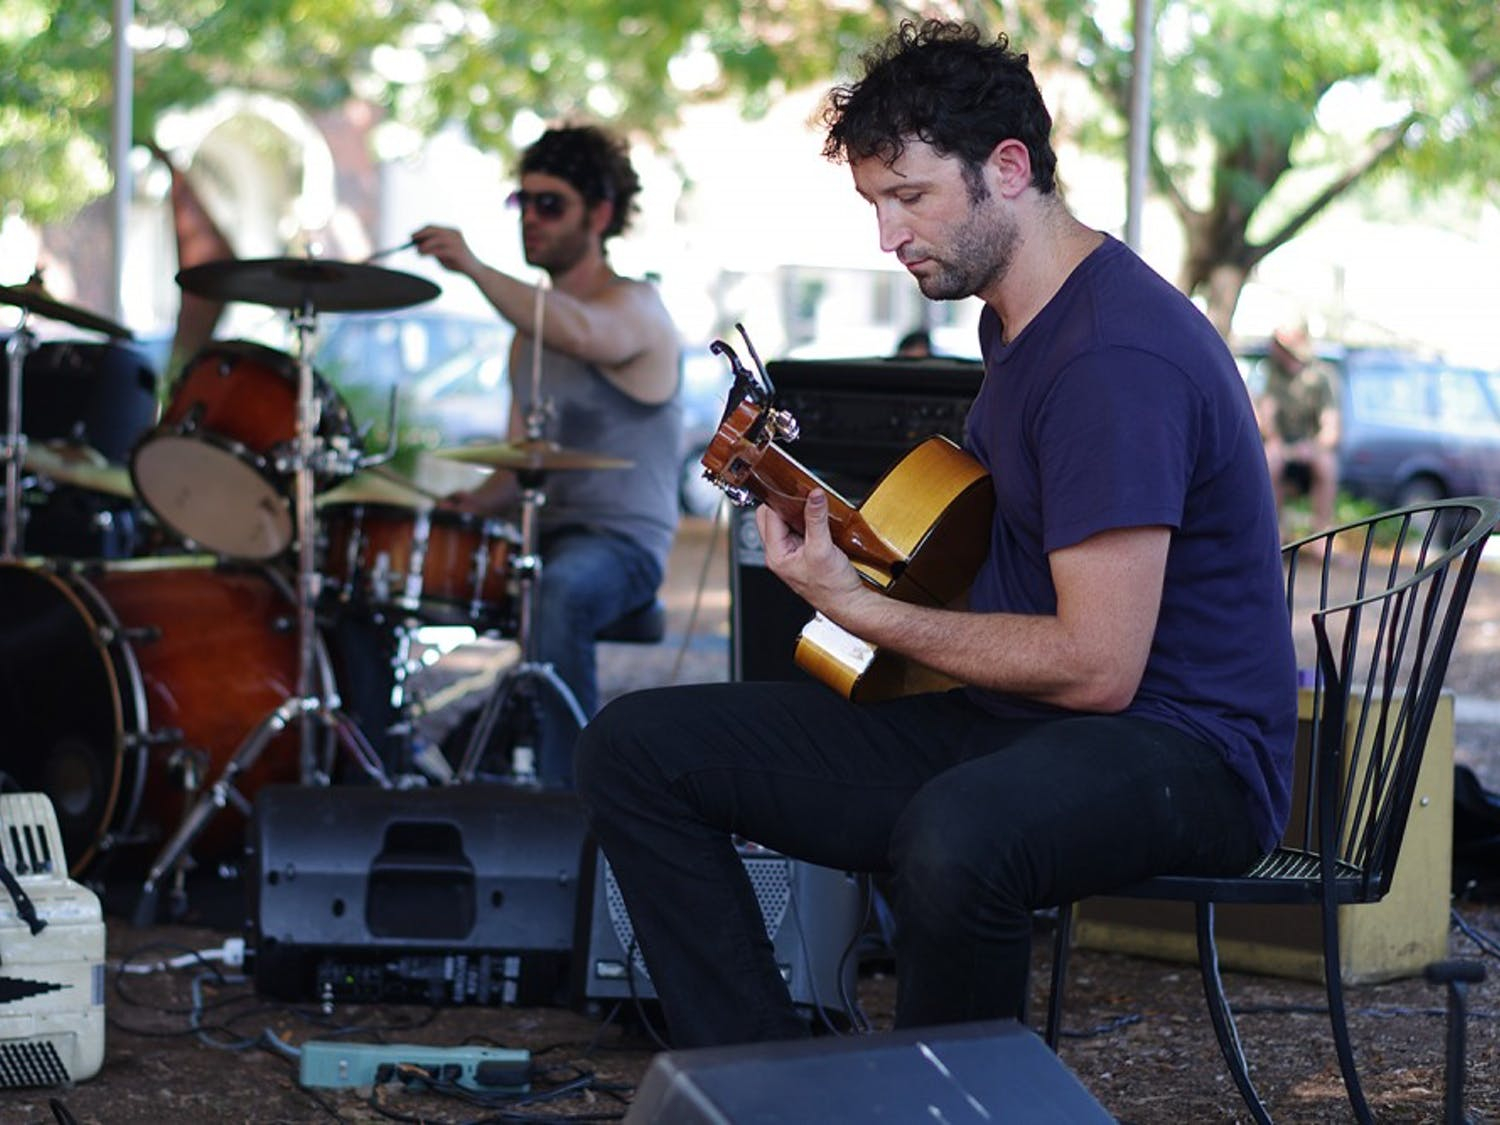 The Weaver Street Market Co-op  Fair happened on Saturday in Carrboro from 3-5 pm. Local companies and producers came together to offer food, live music, and beer and wine samplings.Diago Diaz from Crystal Bright and the Silver Hands, from Greensboro, performed at the co-op.